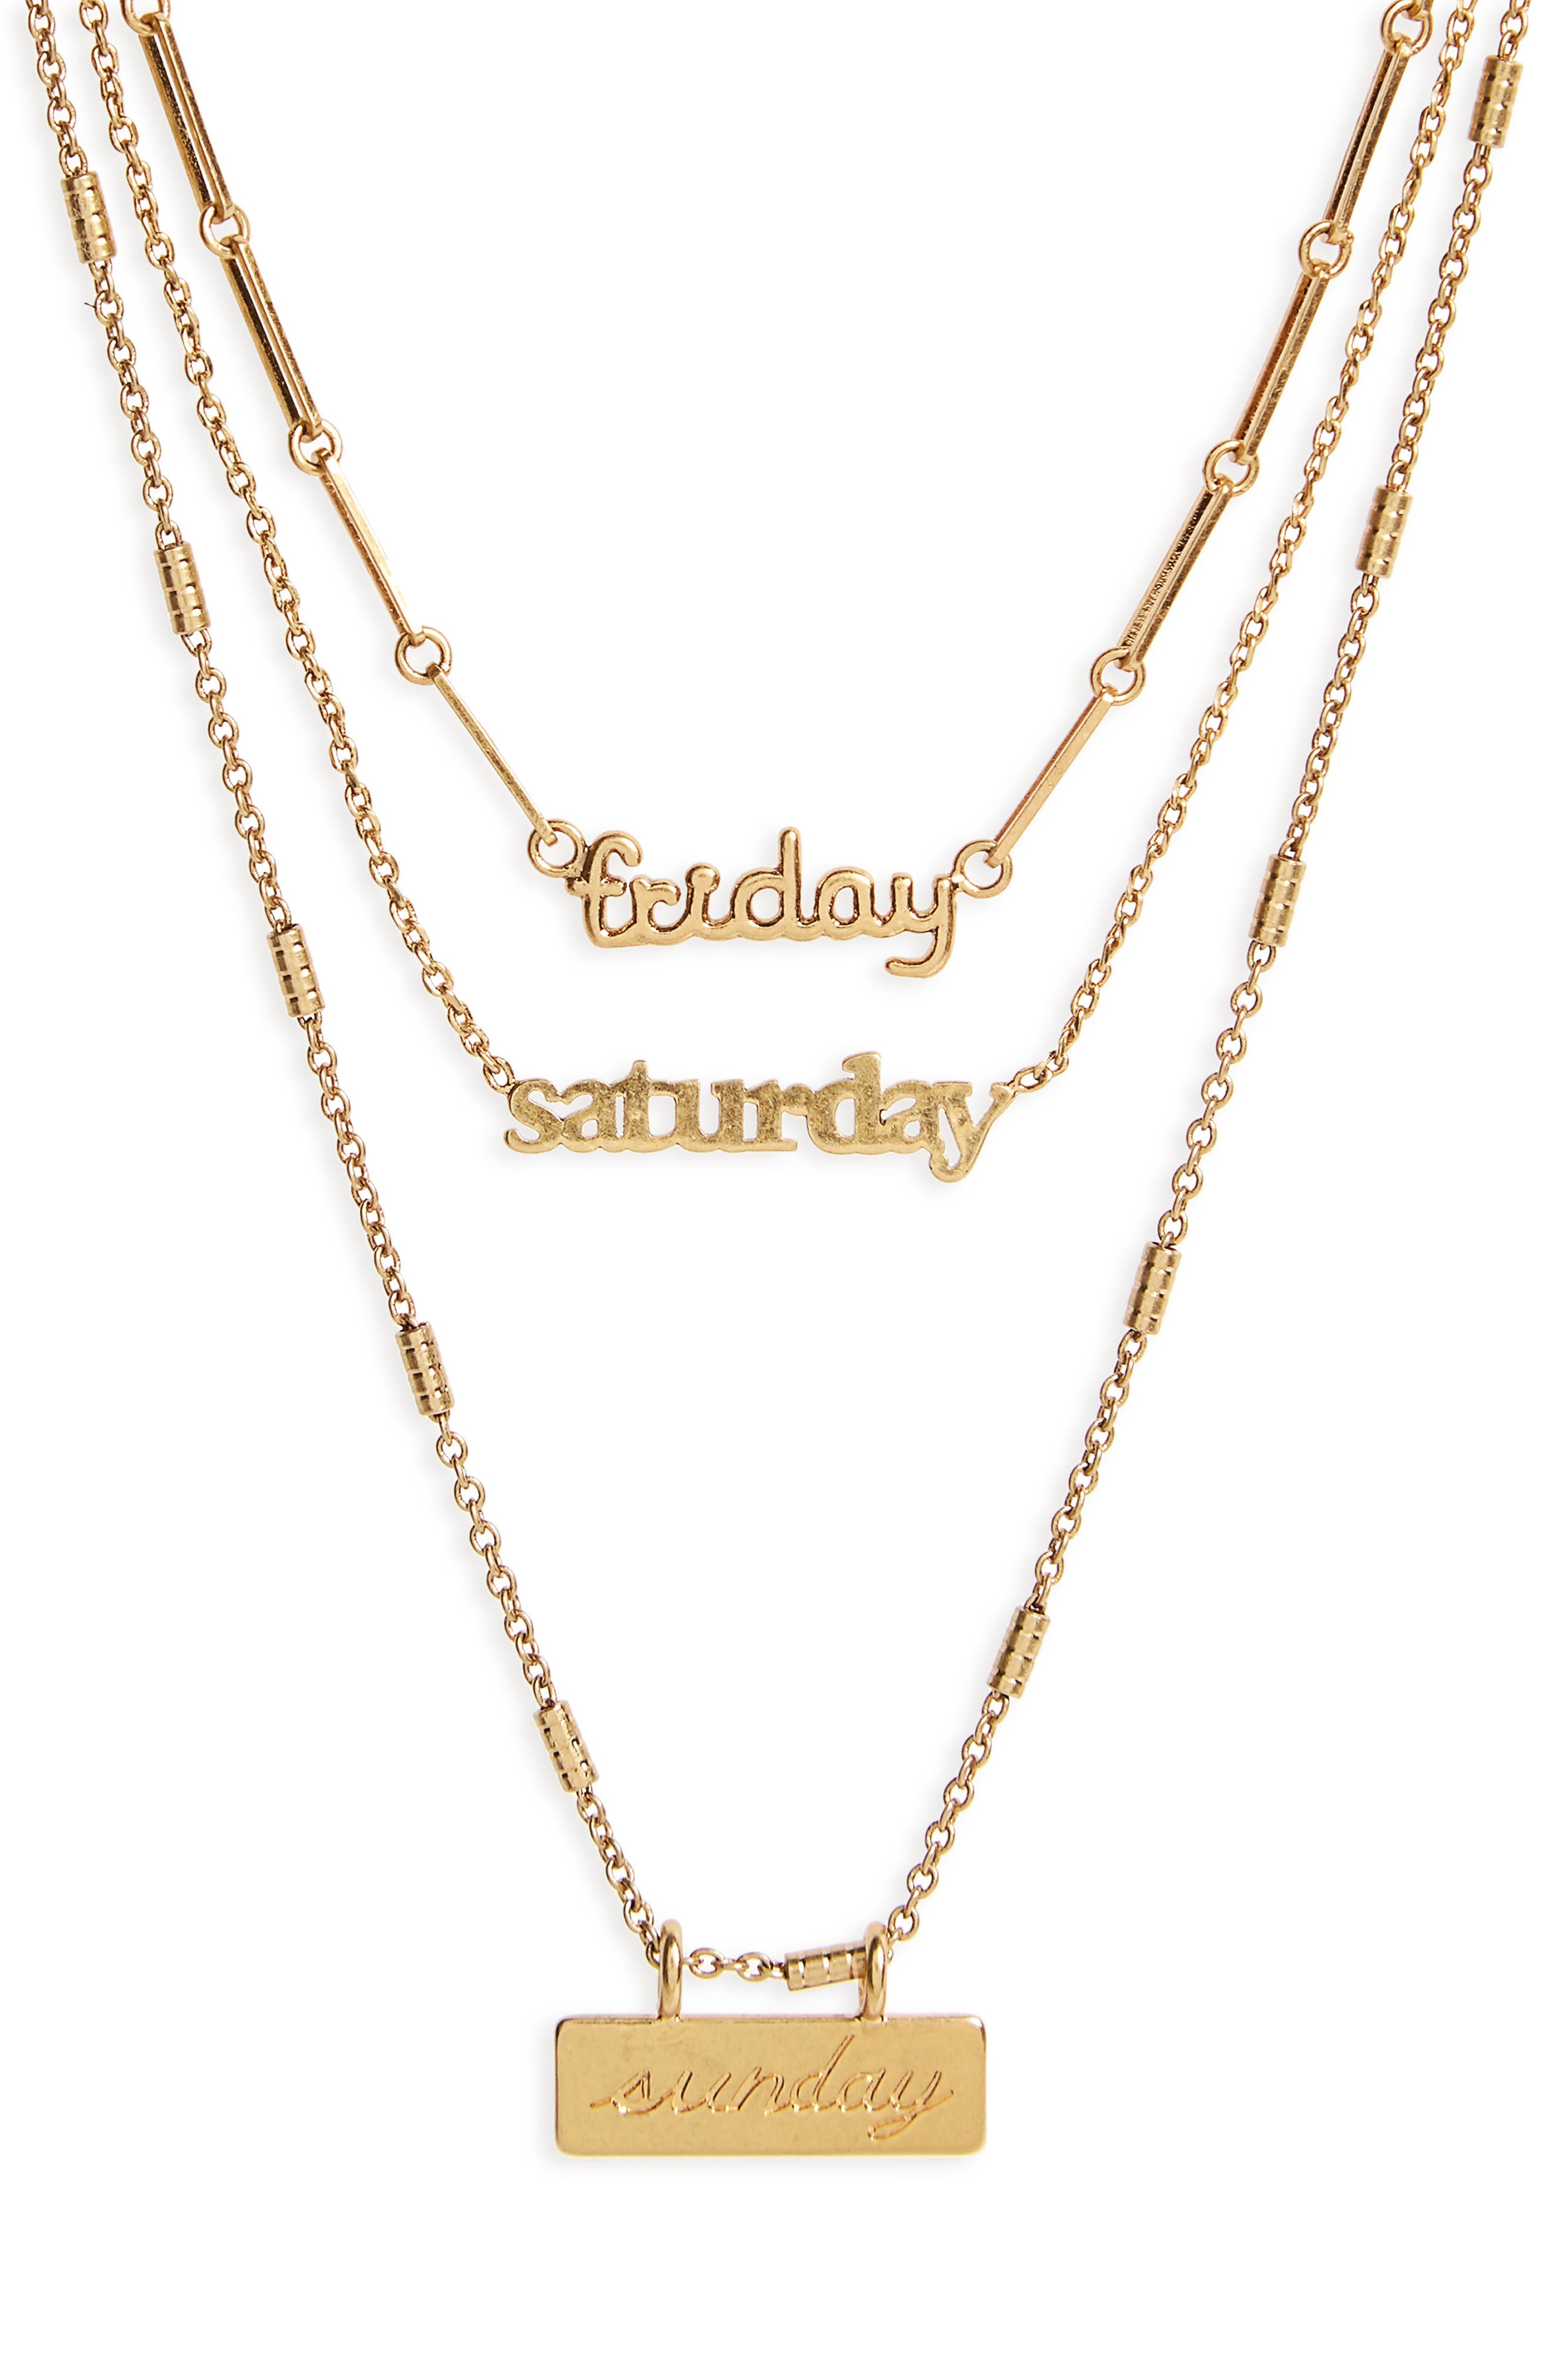 Friday Saturday Sunday Necklace Set,                             Alternate thumbnail 2, color,                             Gold Ox